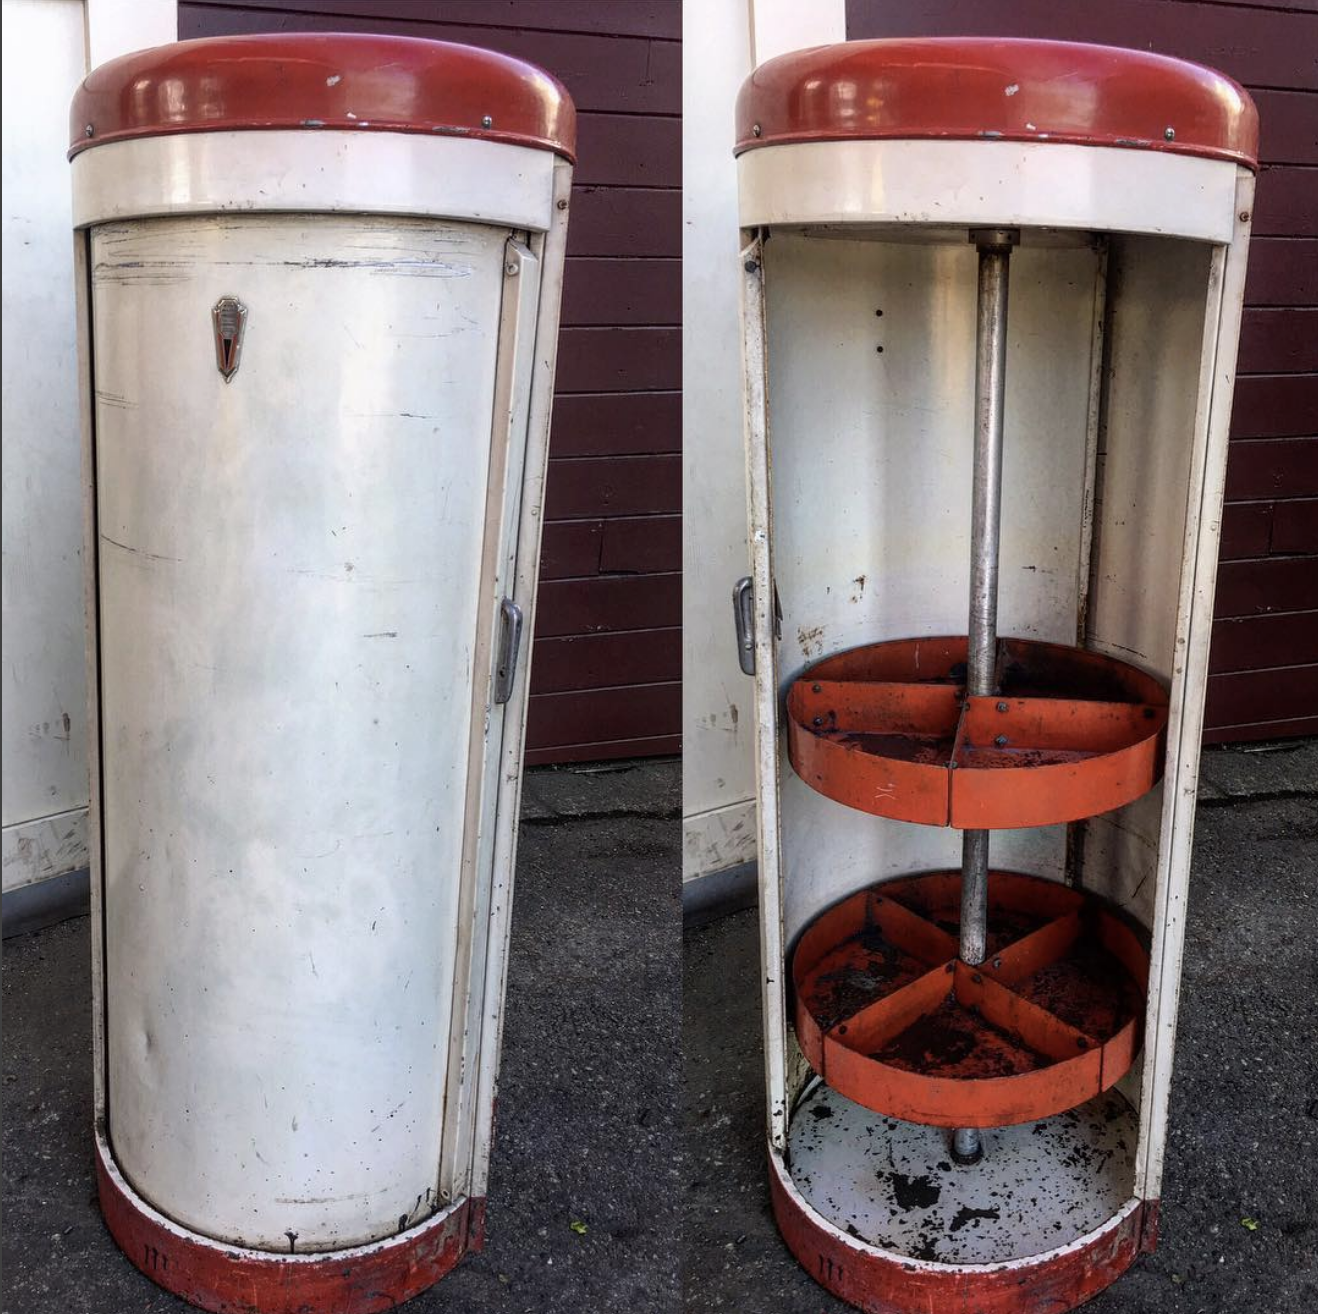 Util-i-Turret found in Washington State